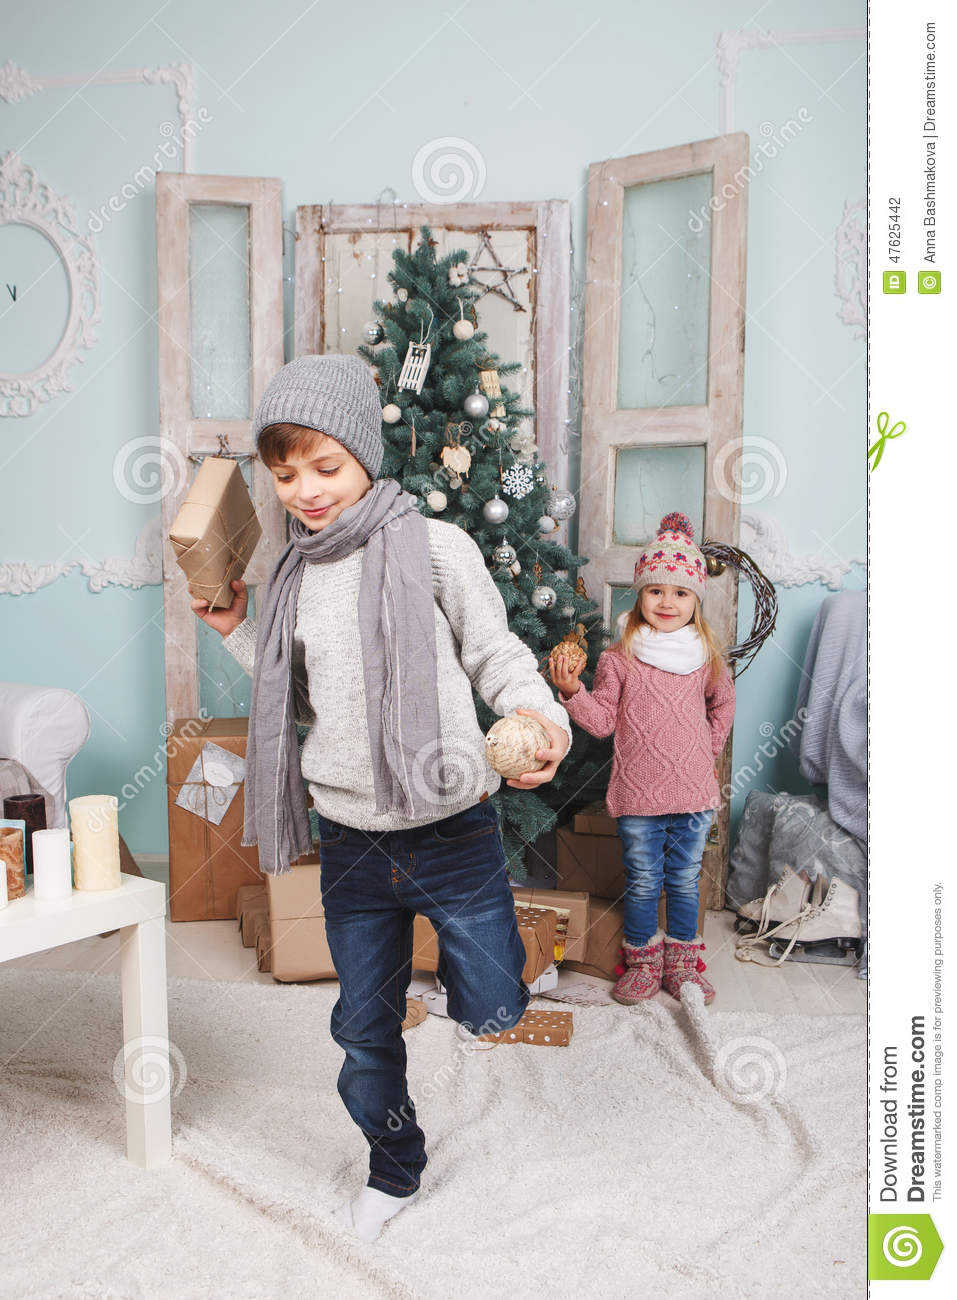 Little Boy On One Leg And New Year Stock Photo Image